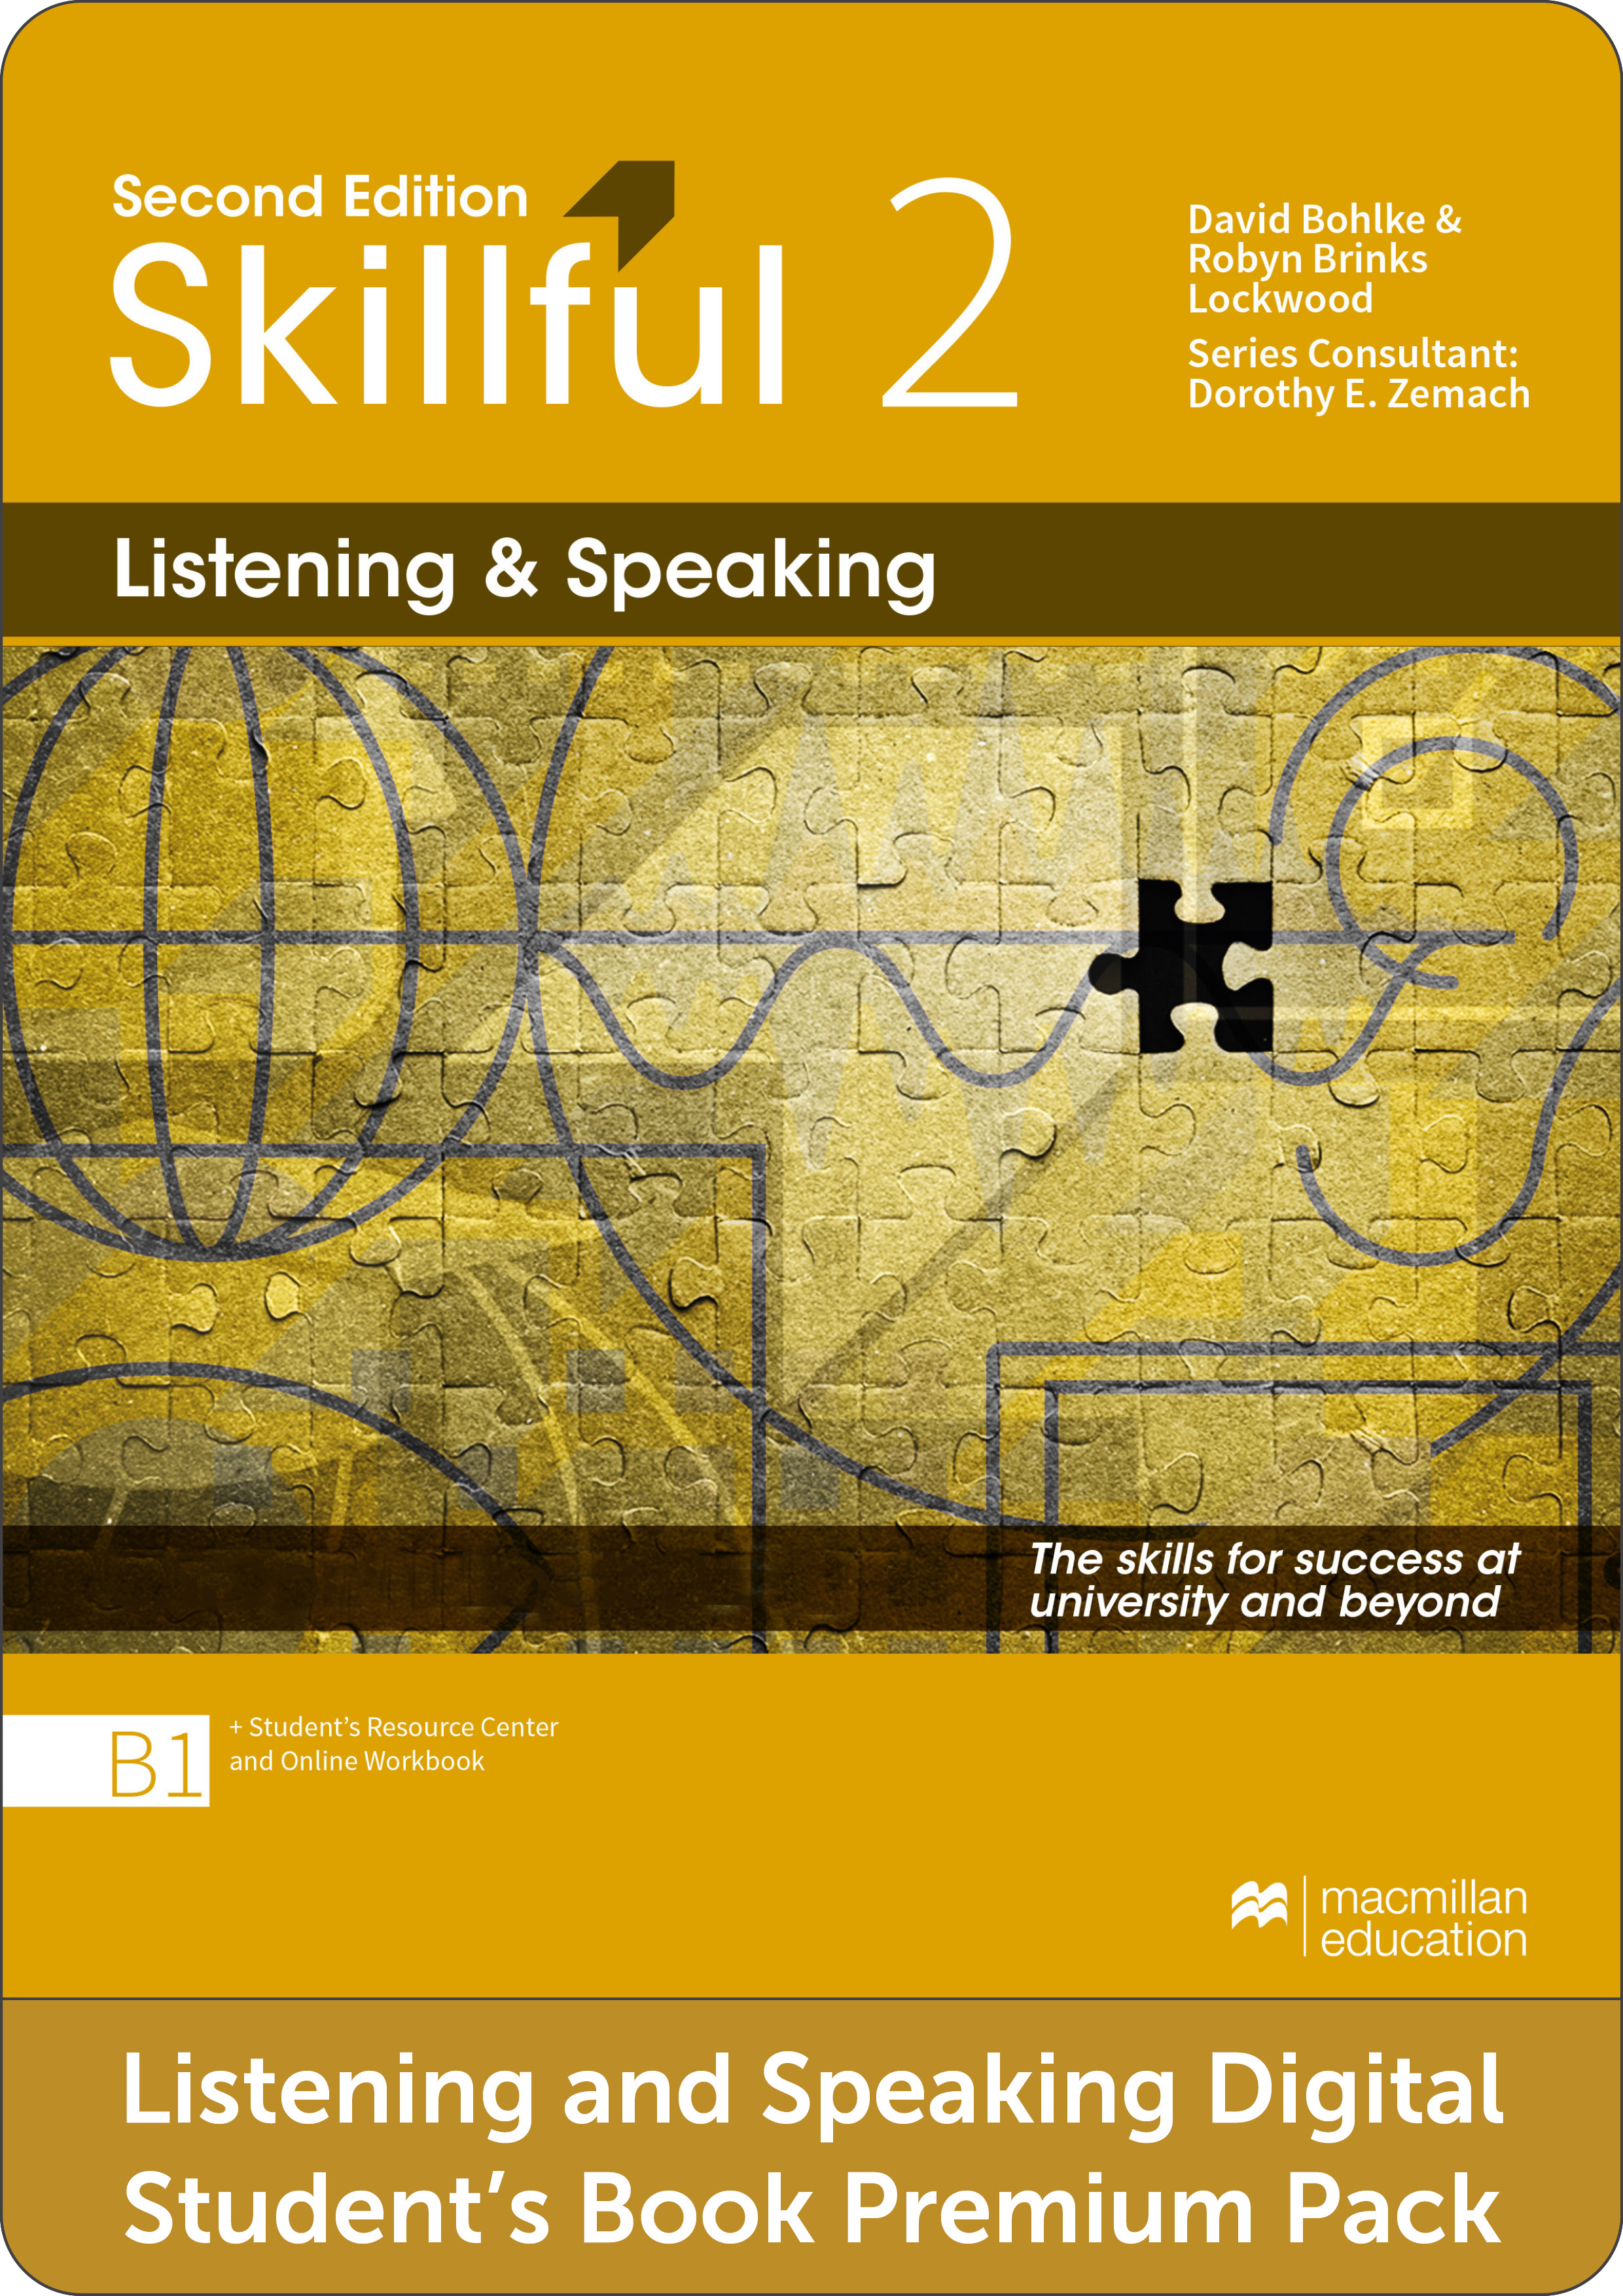 Skillful Second Edition Level 2 Listening and Speaking Premium Digital Student's Book Pack